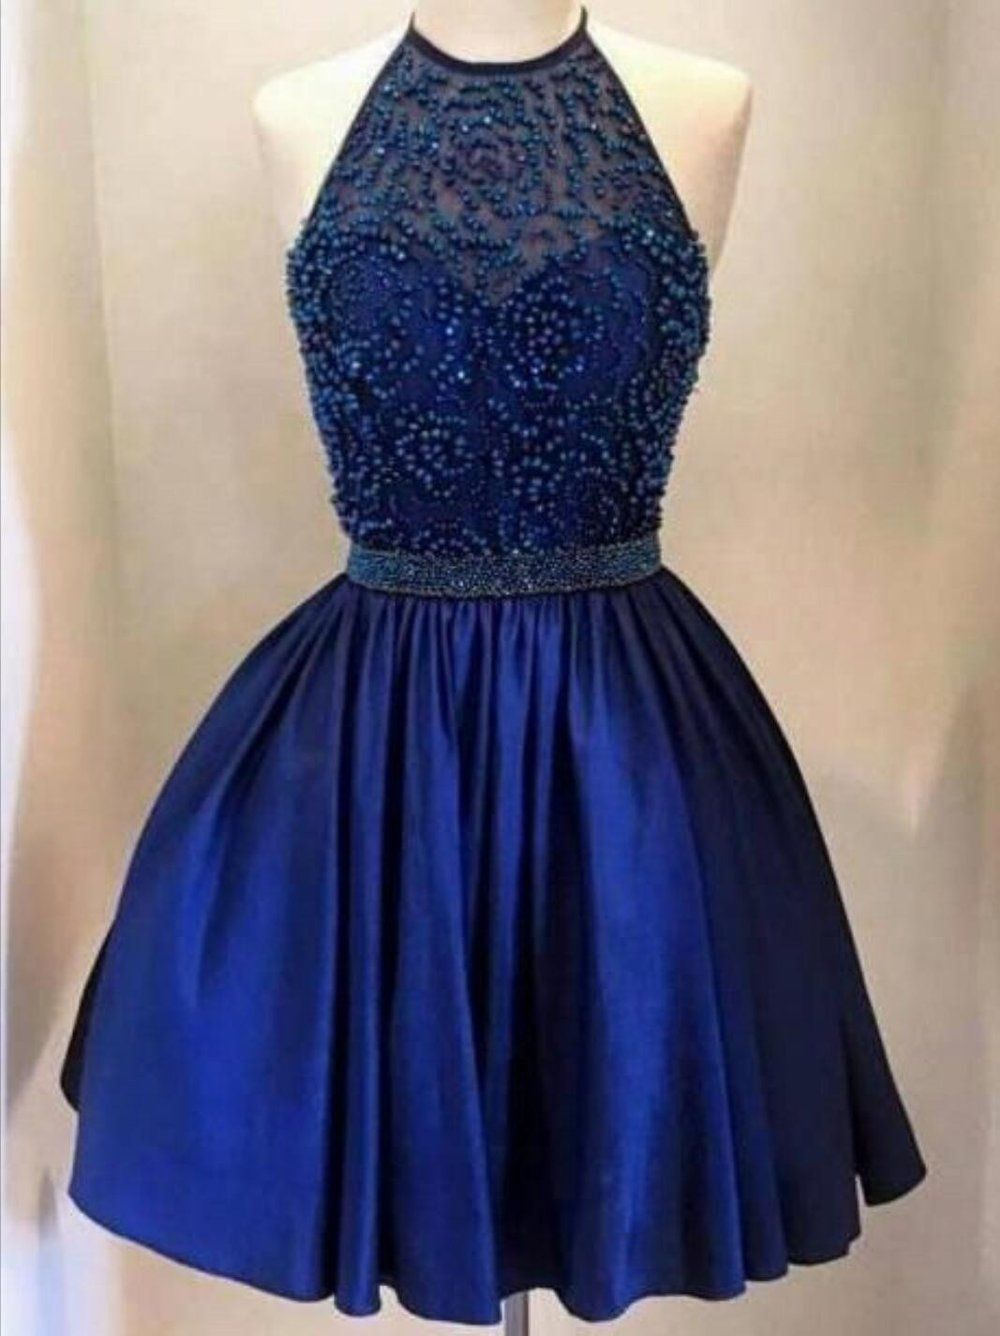 Halter backless royal blue beaded homecoming prom dresses cm